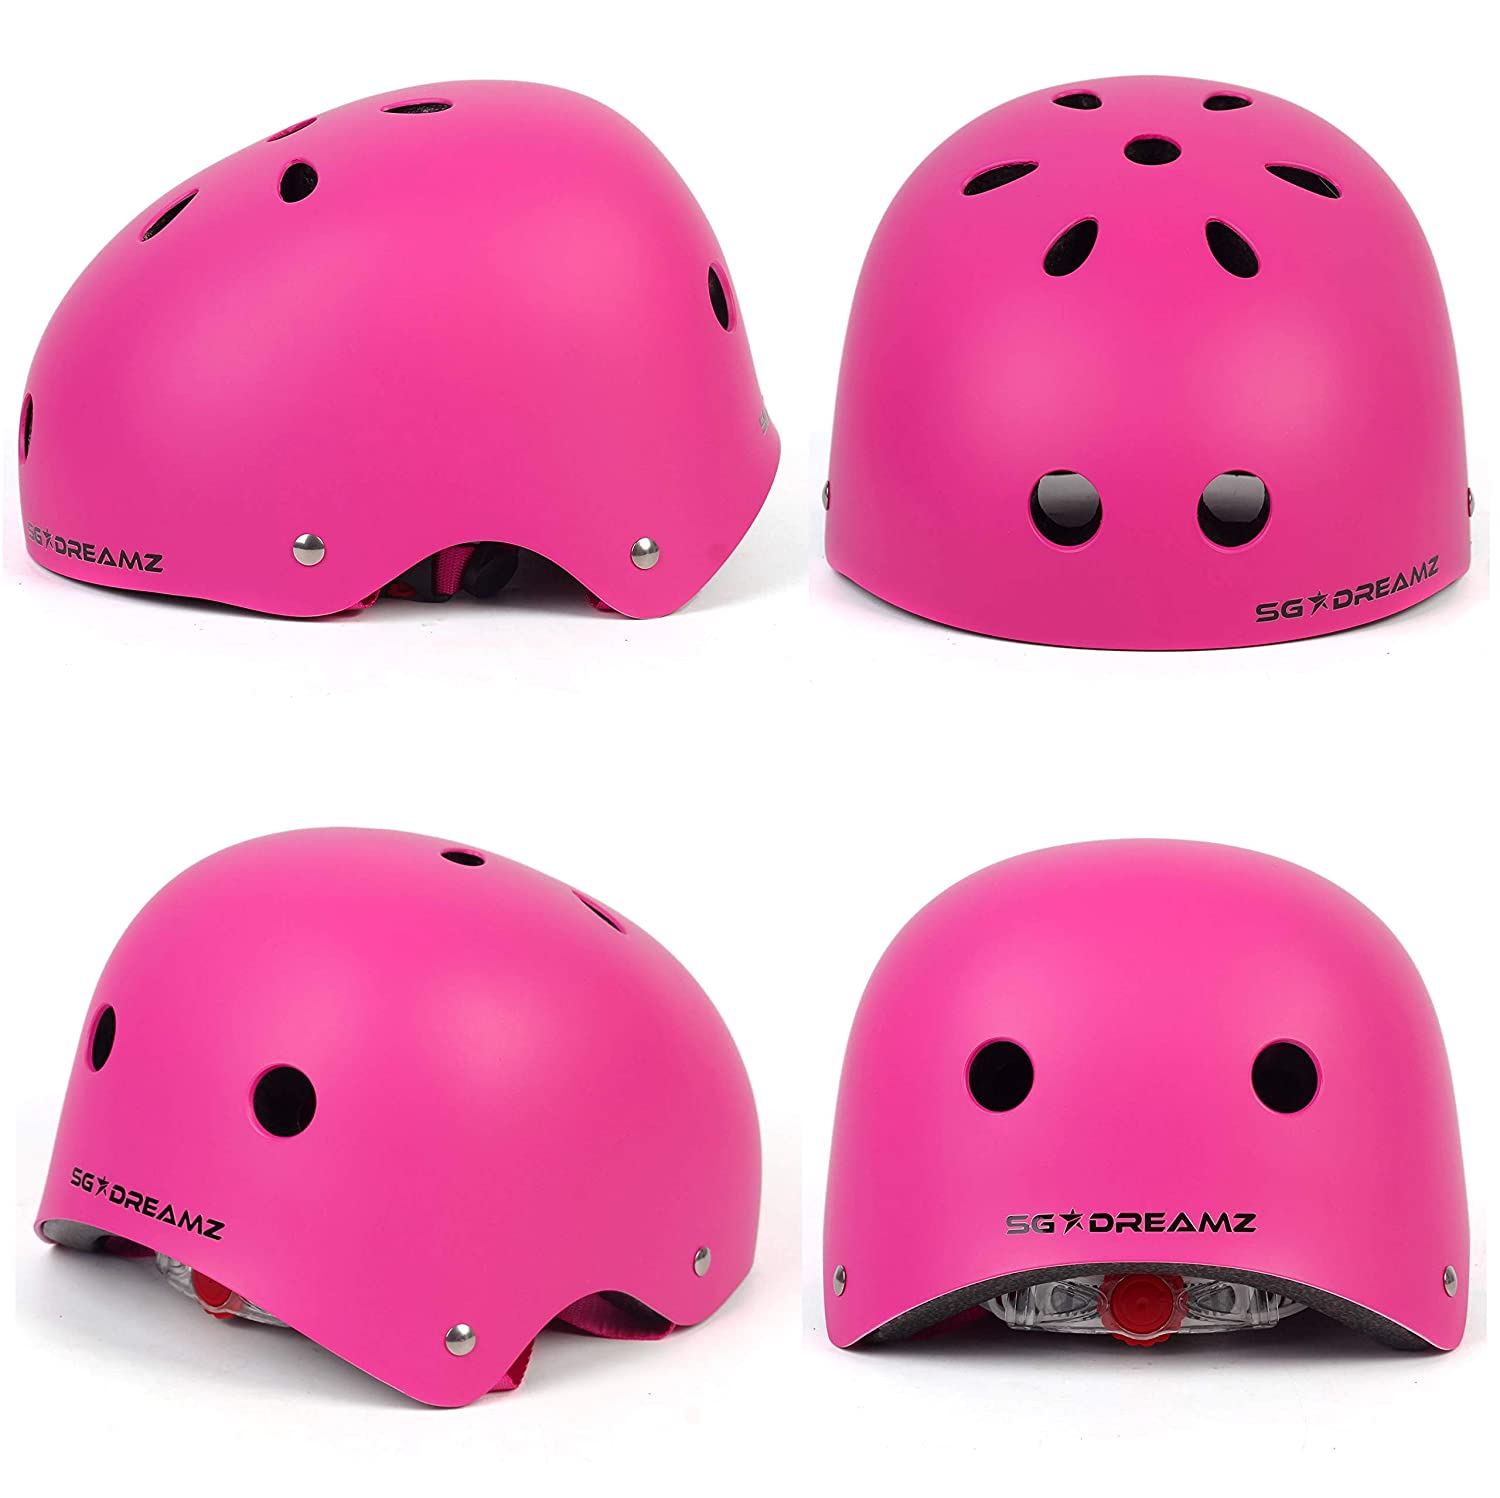 Multi-Sport Helmet for Skateboard Scooter Skating Bicycle Bike Cycling Youth Helmet Certified for Safety Adjustable for Youth from Ages 8 to 18